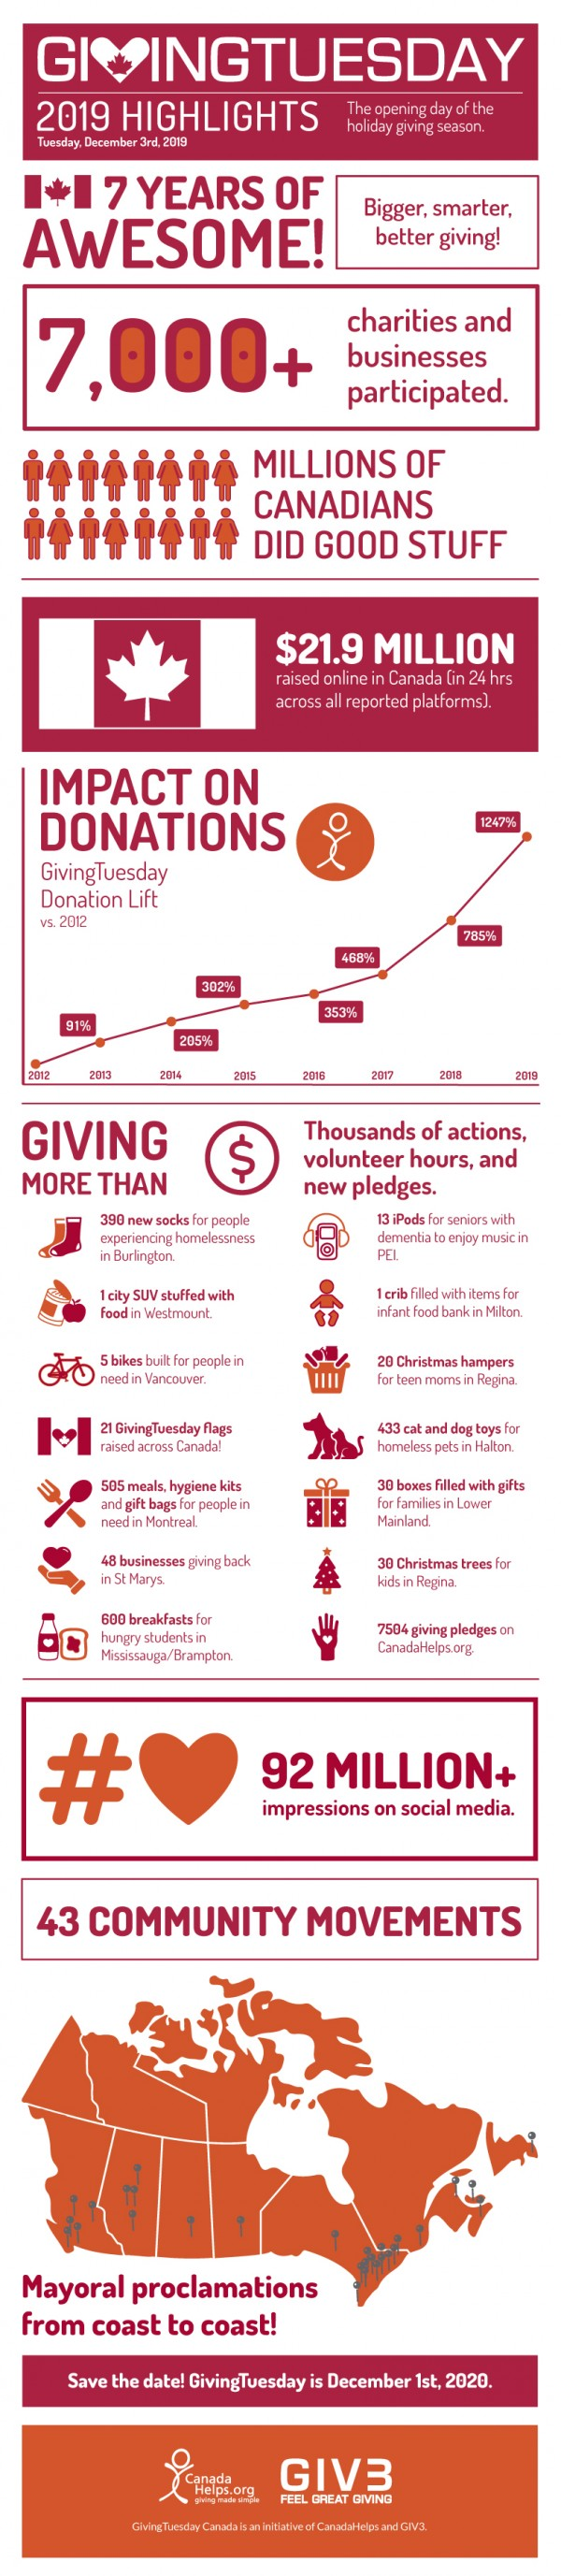 GivingTuesday 2019_Infographic Results_EN_Final